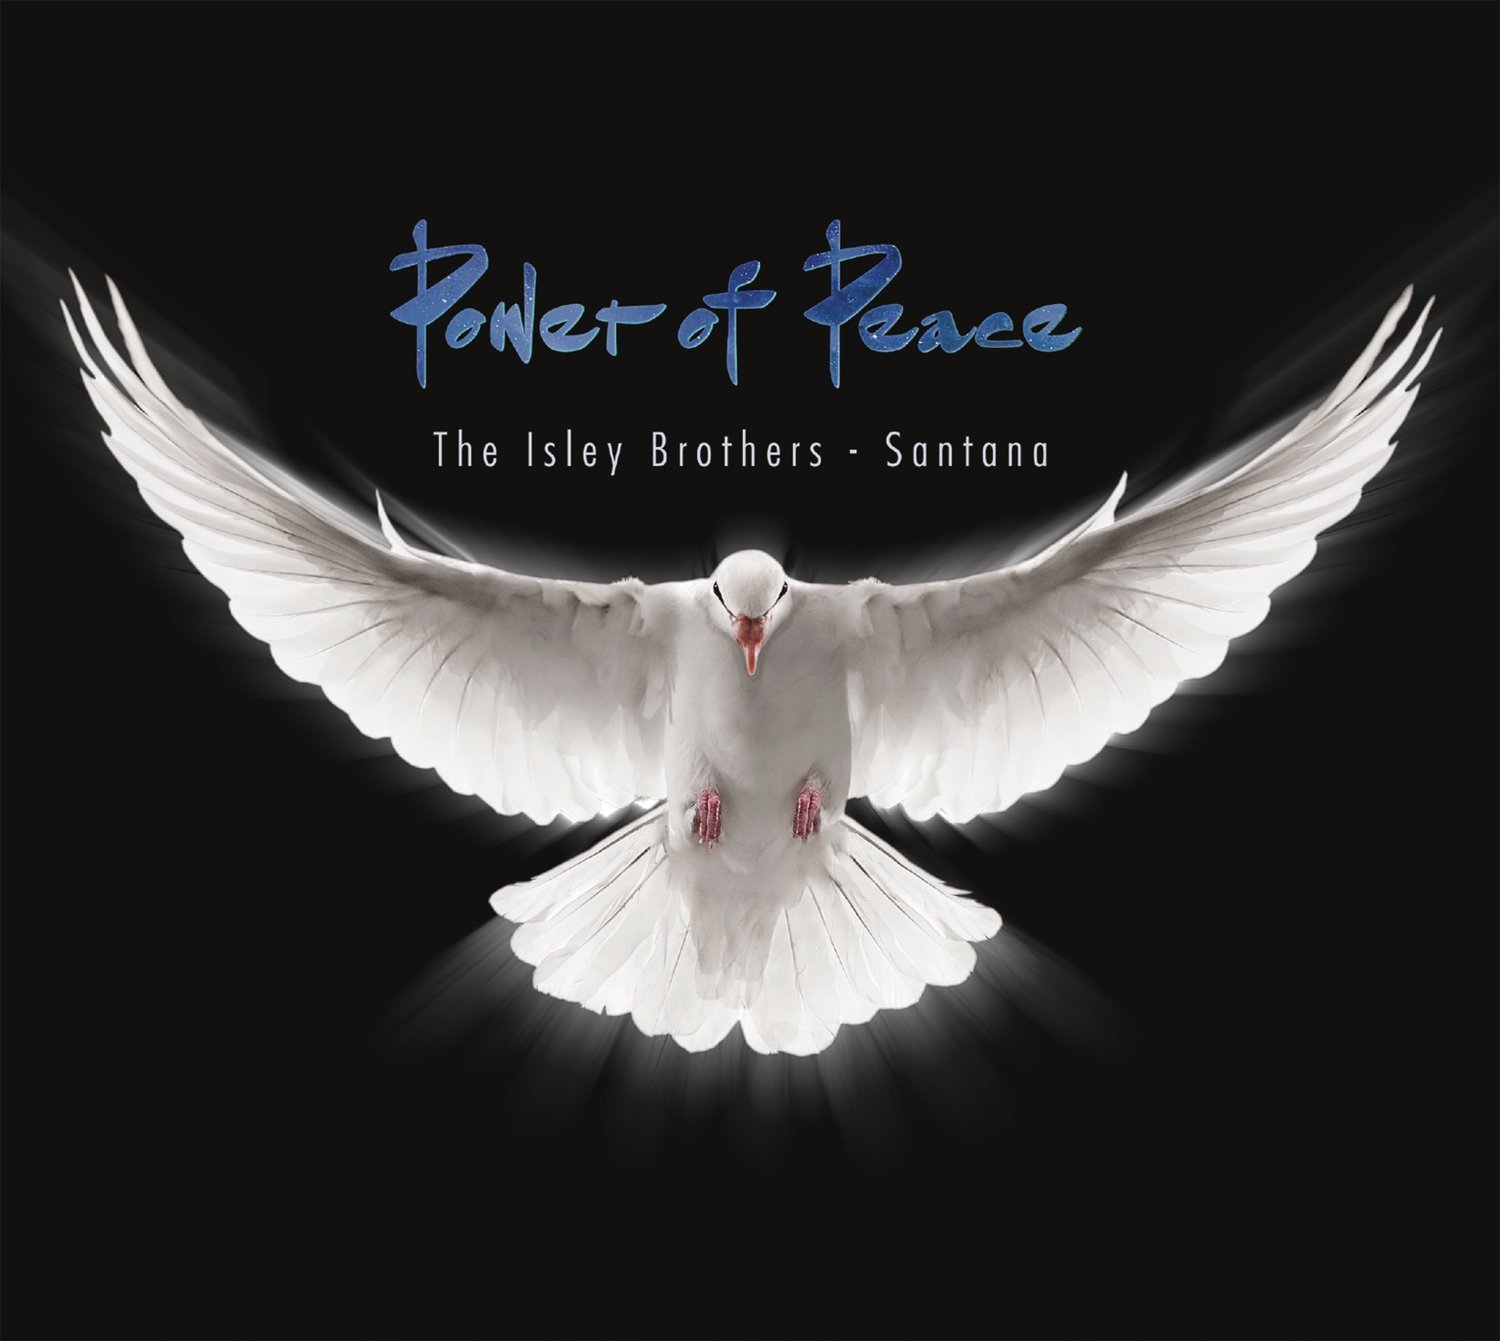 The Isley Brothers and Santana's Power Of Peace